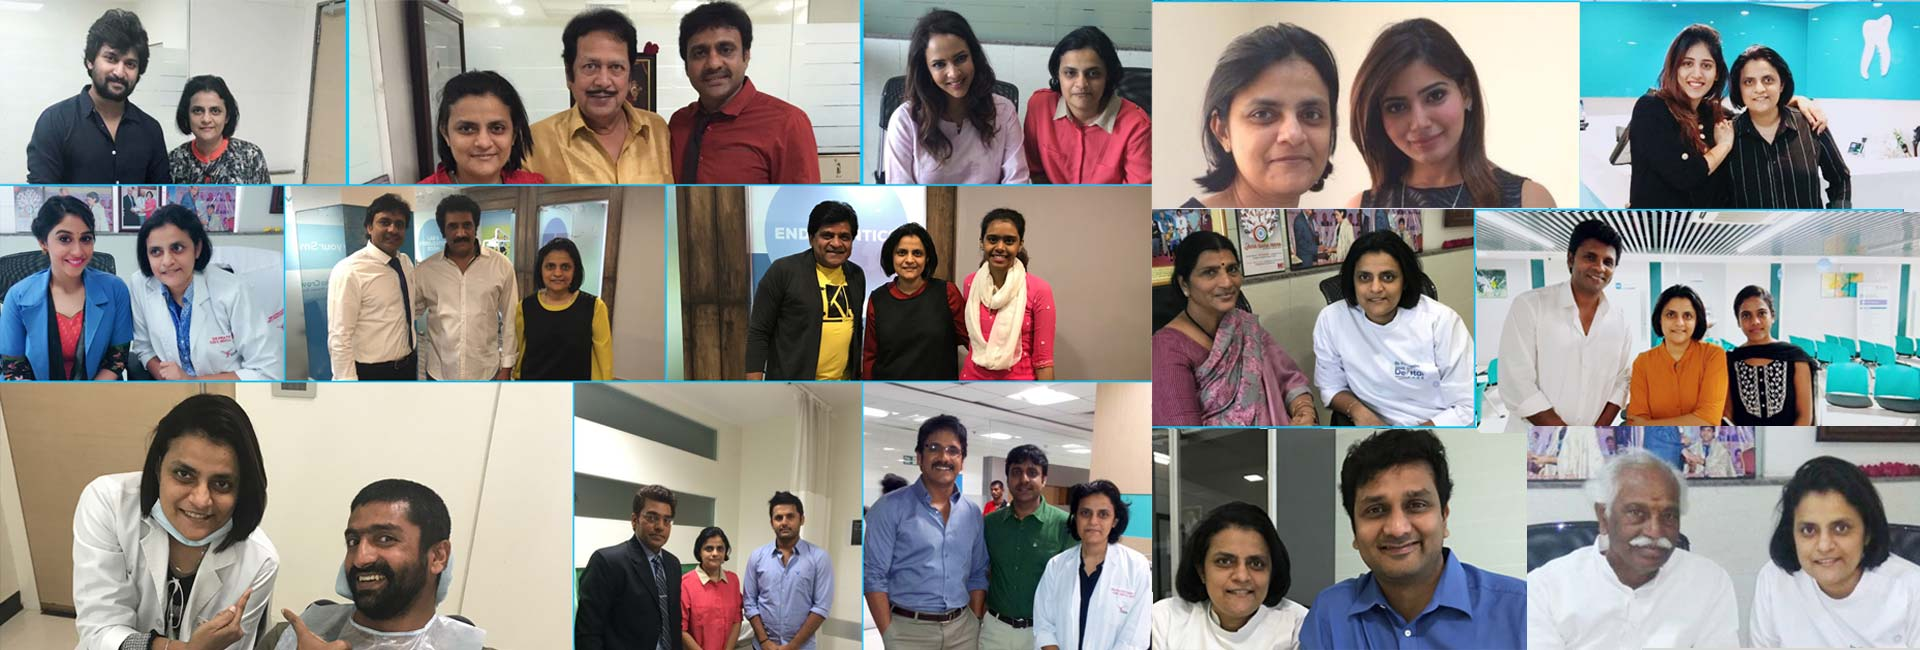 Kims dental hospital optimised to all celebrities and all kind of peoples, because best dental care and clinic at Kondapur in India, best dental hospital in Hyderabad, best dental hospital in secundrabad